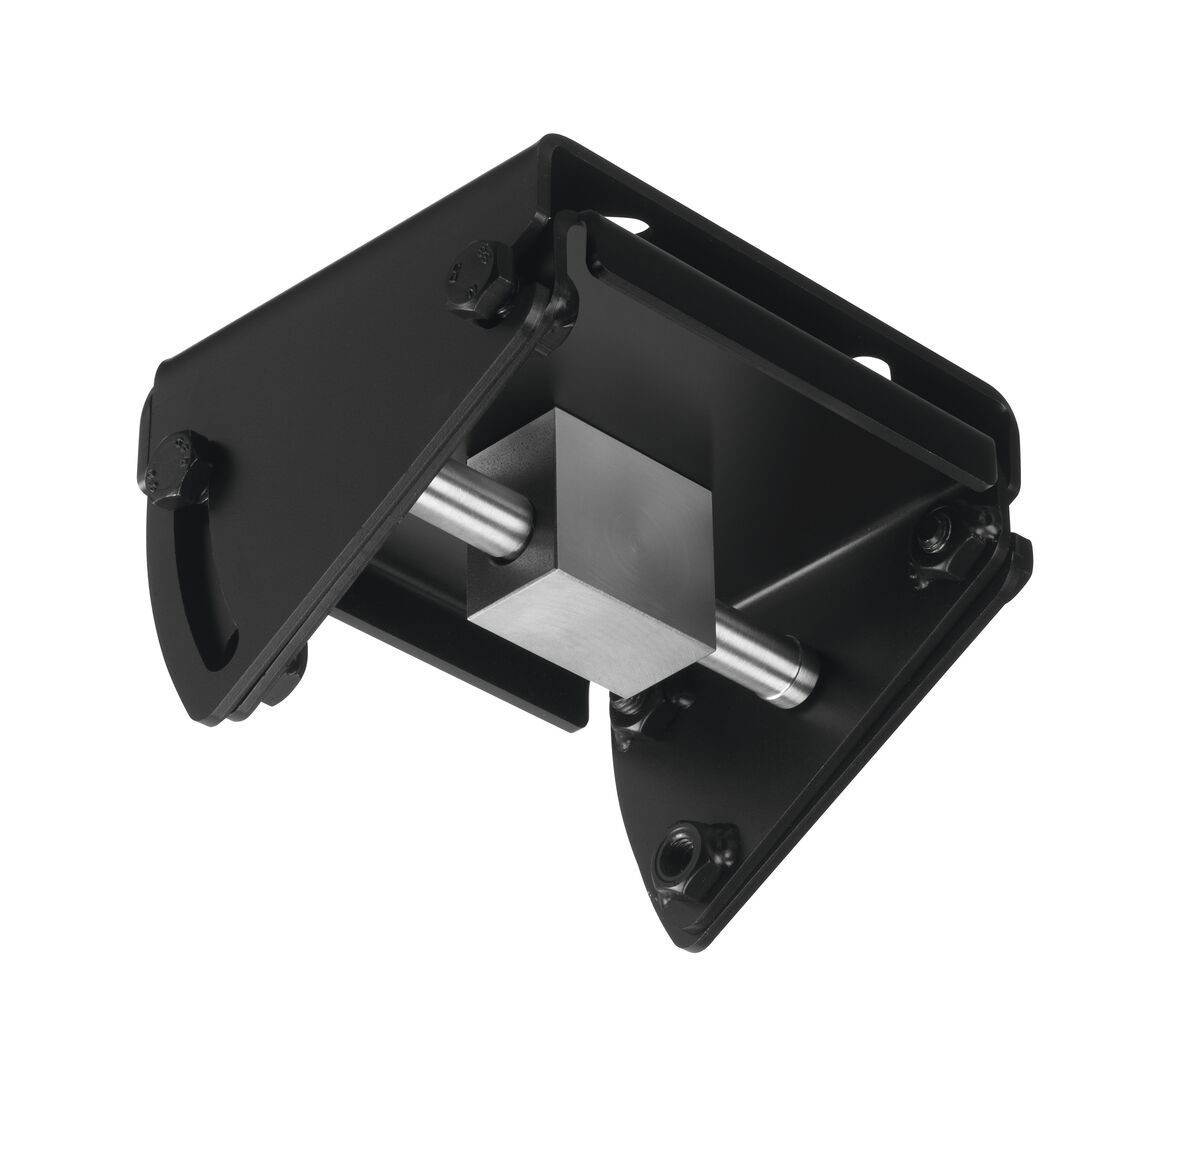 Vogel's PUC 1080 Ceiling plate turn and tilt - Product